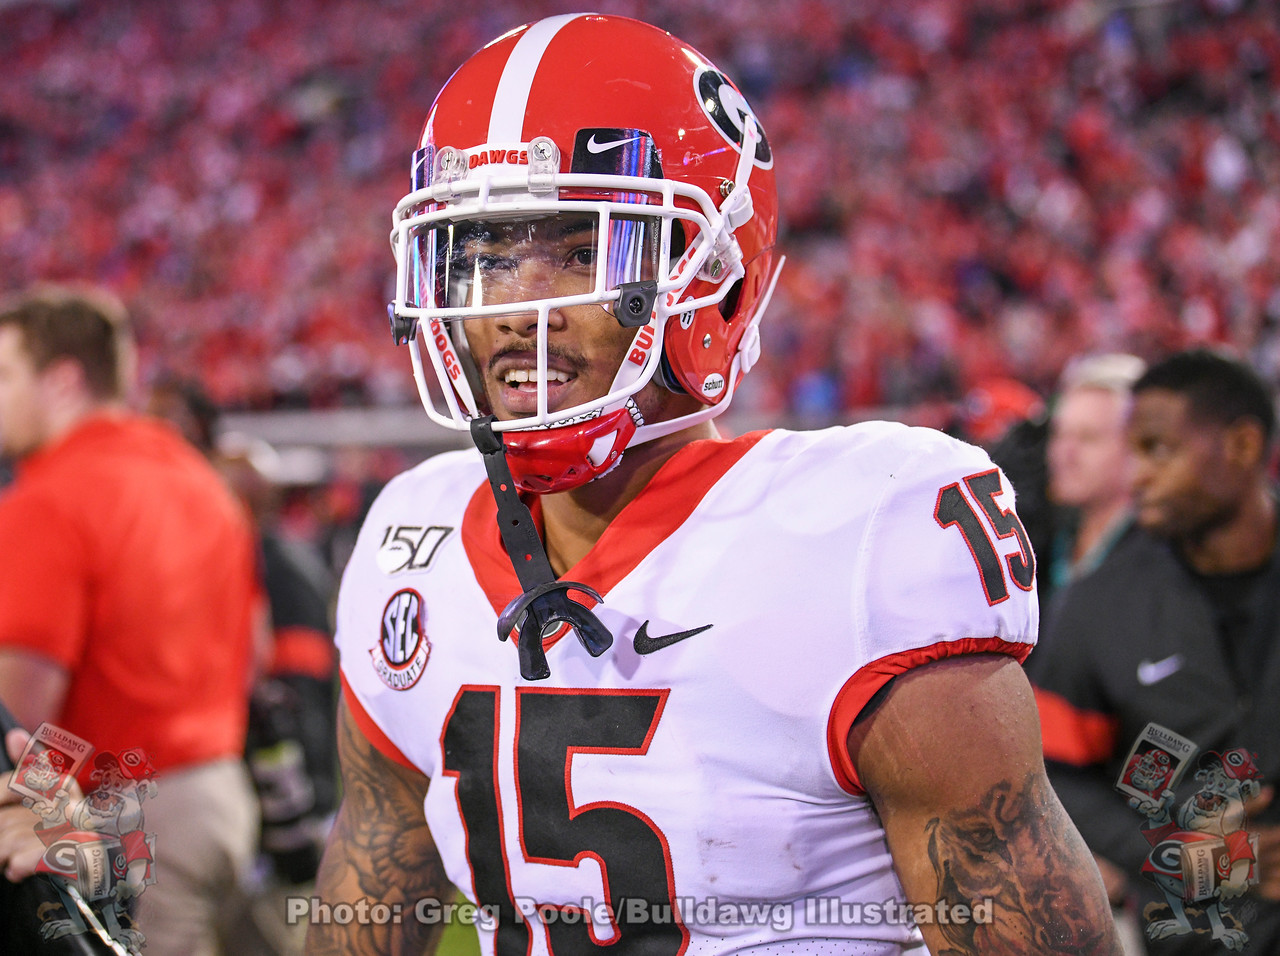 Wide receiver Lawrence Cager (15) is all smiles after Georgia's 24-17 win over Florida on Saturday, November 2, 2019